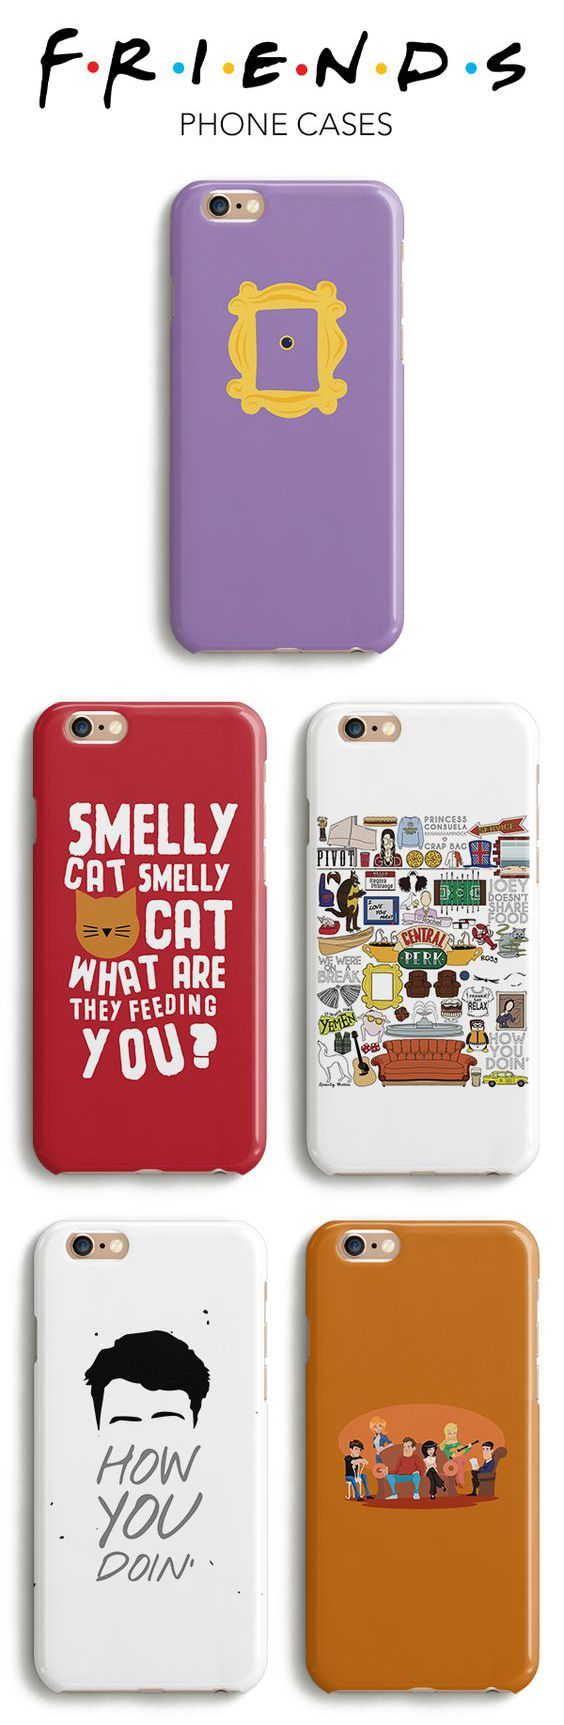 Personalize your own quote phone case with text you like.